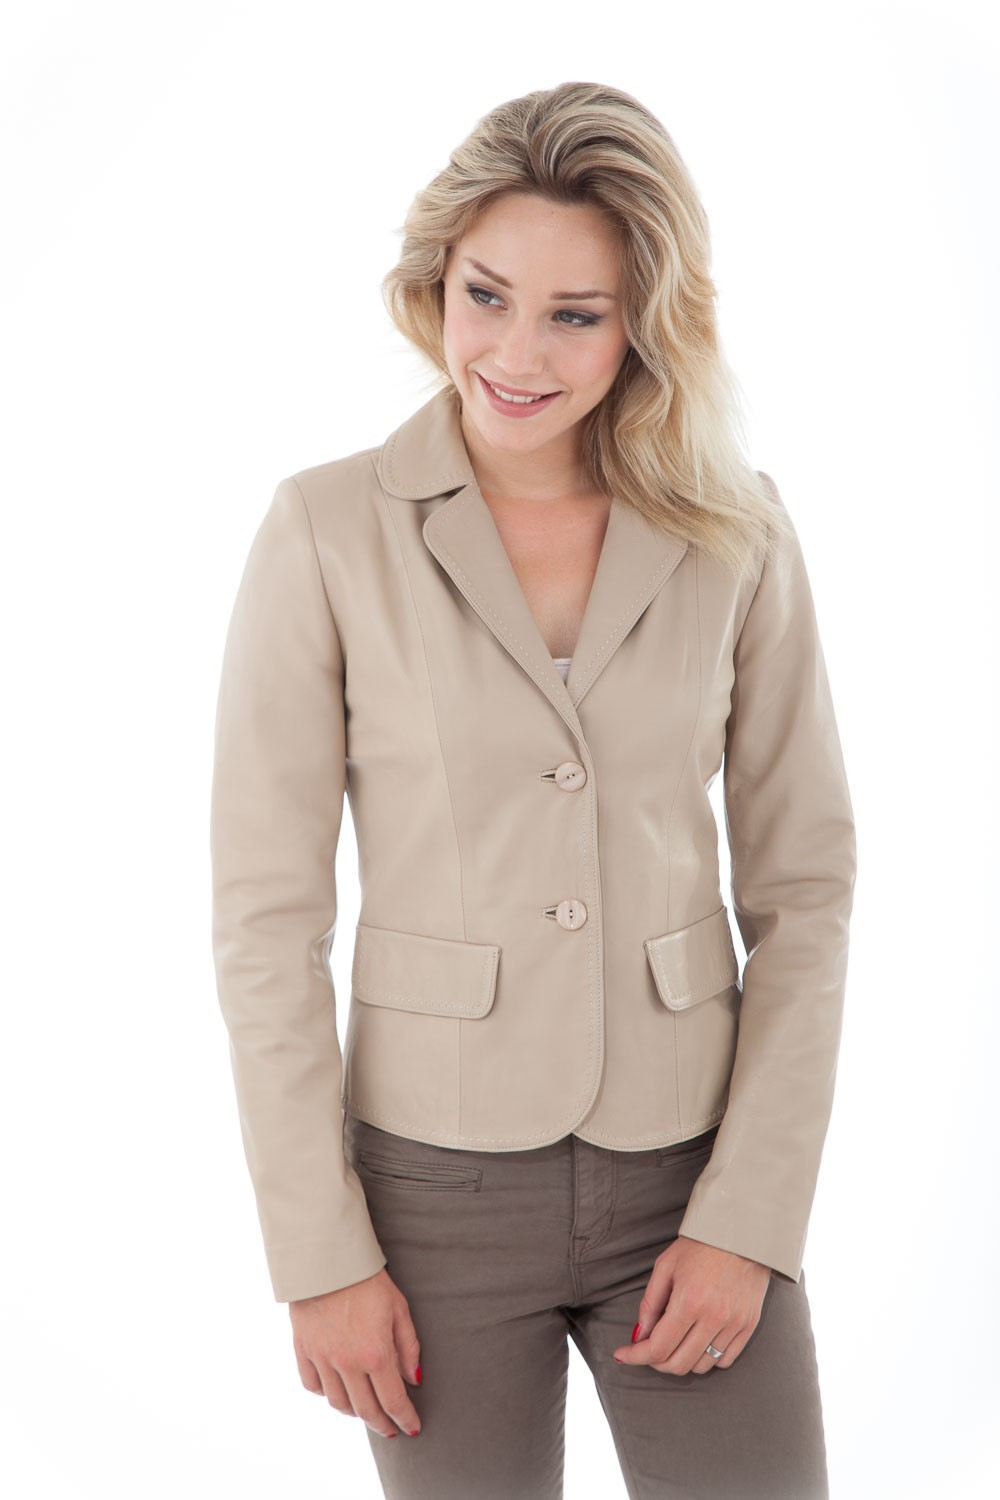 veste blazer courte en cuir d 39 agneau beige cesare nori camelia cesare nori depuis 1955. Black Bedroom Furniture Sets. Home Design Ideas